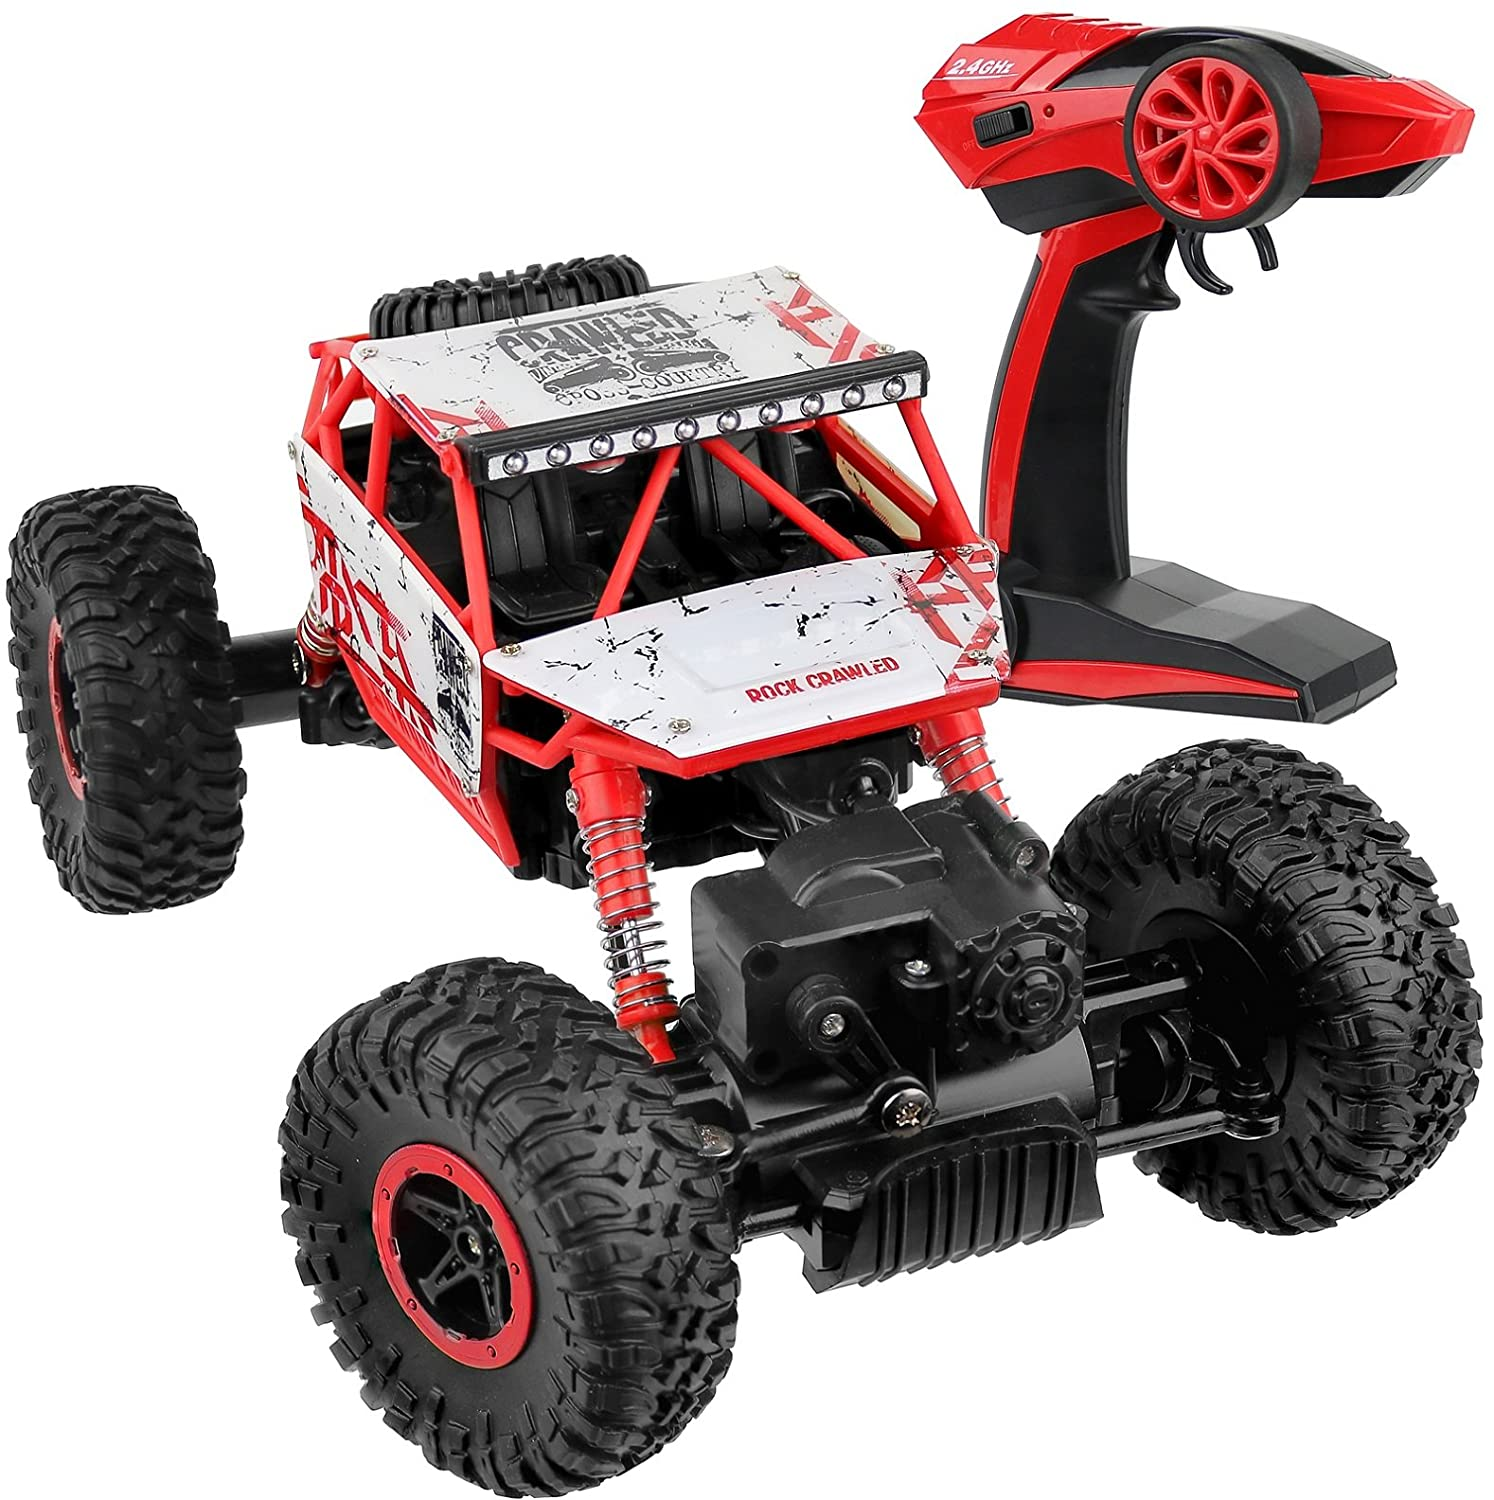 rc trucks that are cheap with 252835226303 on Picture640464 together with Best Drift Cars For Sale additionally Cars in addition Evocustoms Zeus V2 Trophy Truck moreover Everybodys Scalin Applying A Vinyl Wrap To A Wraith Spawn.